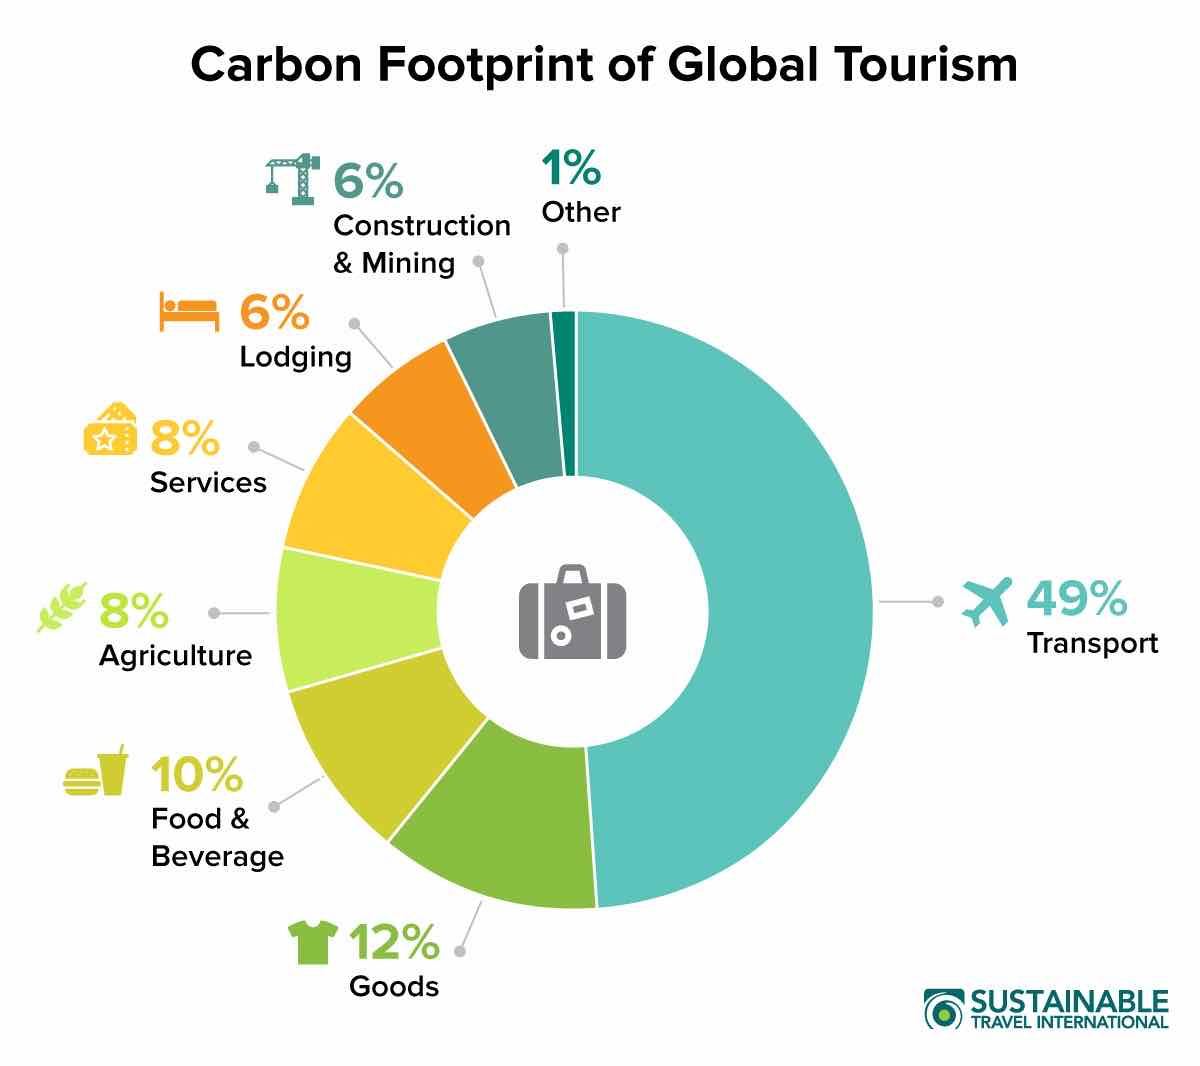 A pie chart showing the climate impact of different sectors of the tourism industry, including travel (transport), food, goods, and hotels. From Sustainable Travel International.